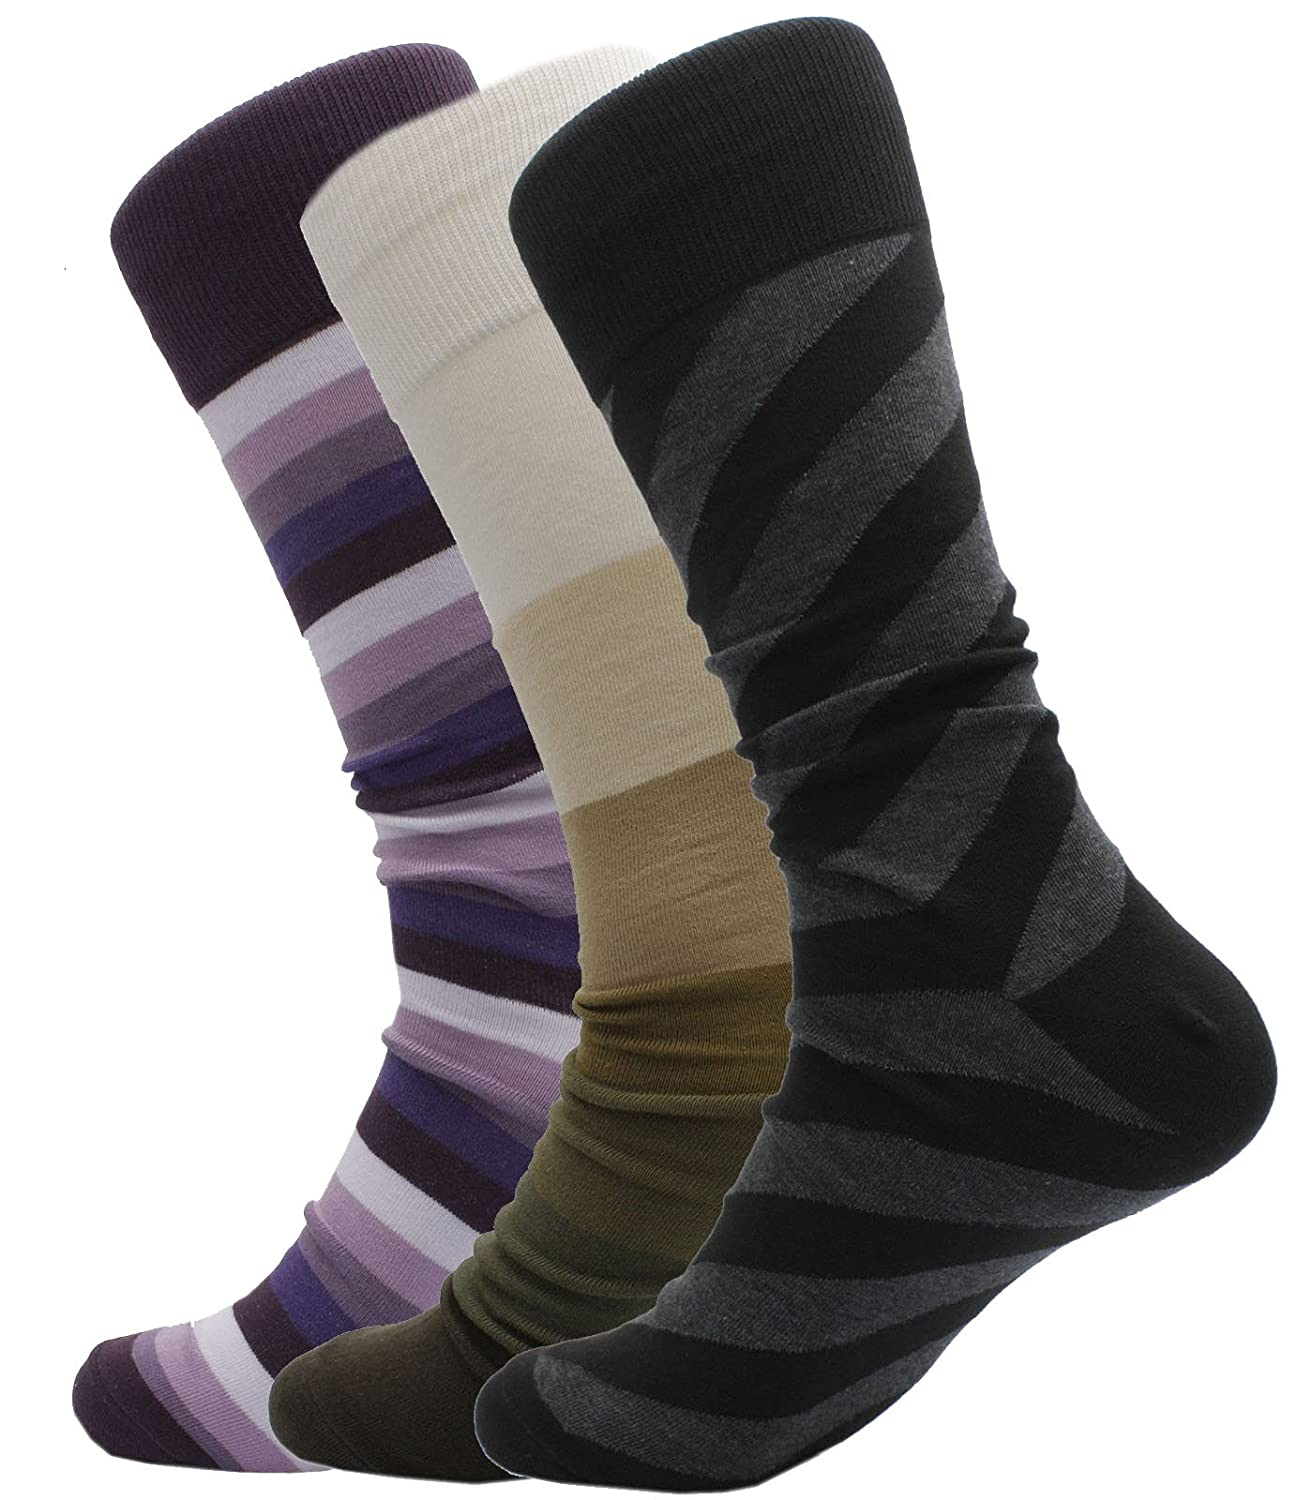 Soxmile Men's Kingsize Business Casual Stripes Socks 3pk soxmile-casual-stripes-3pk